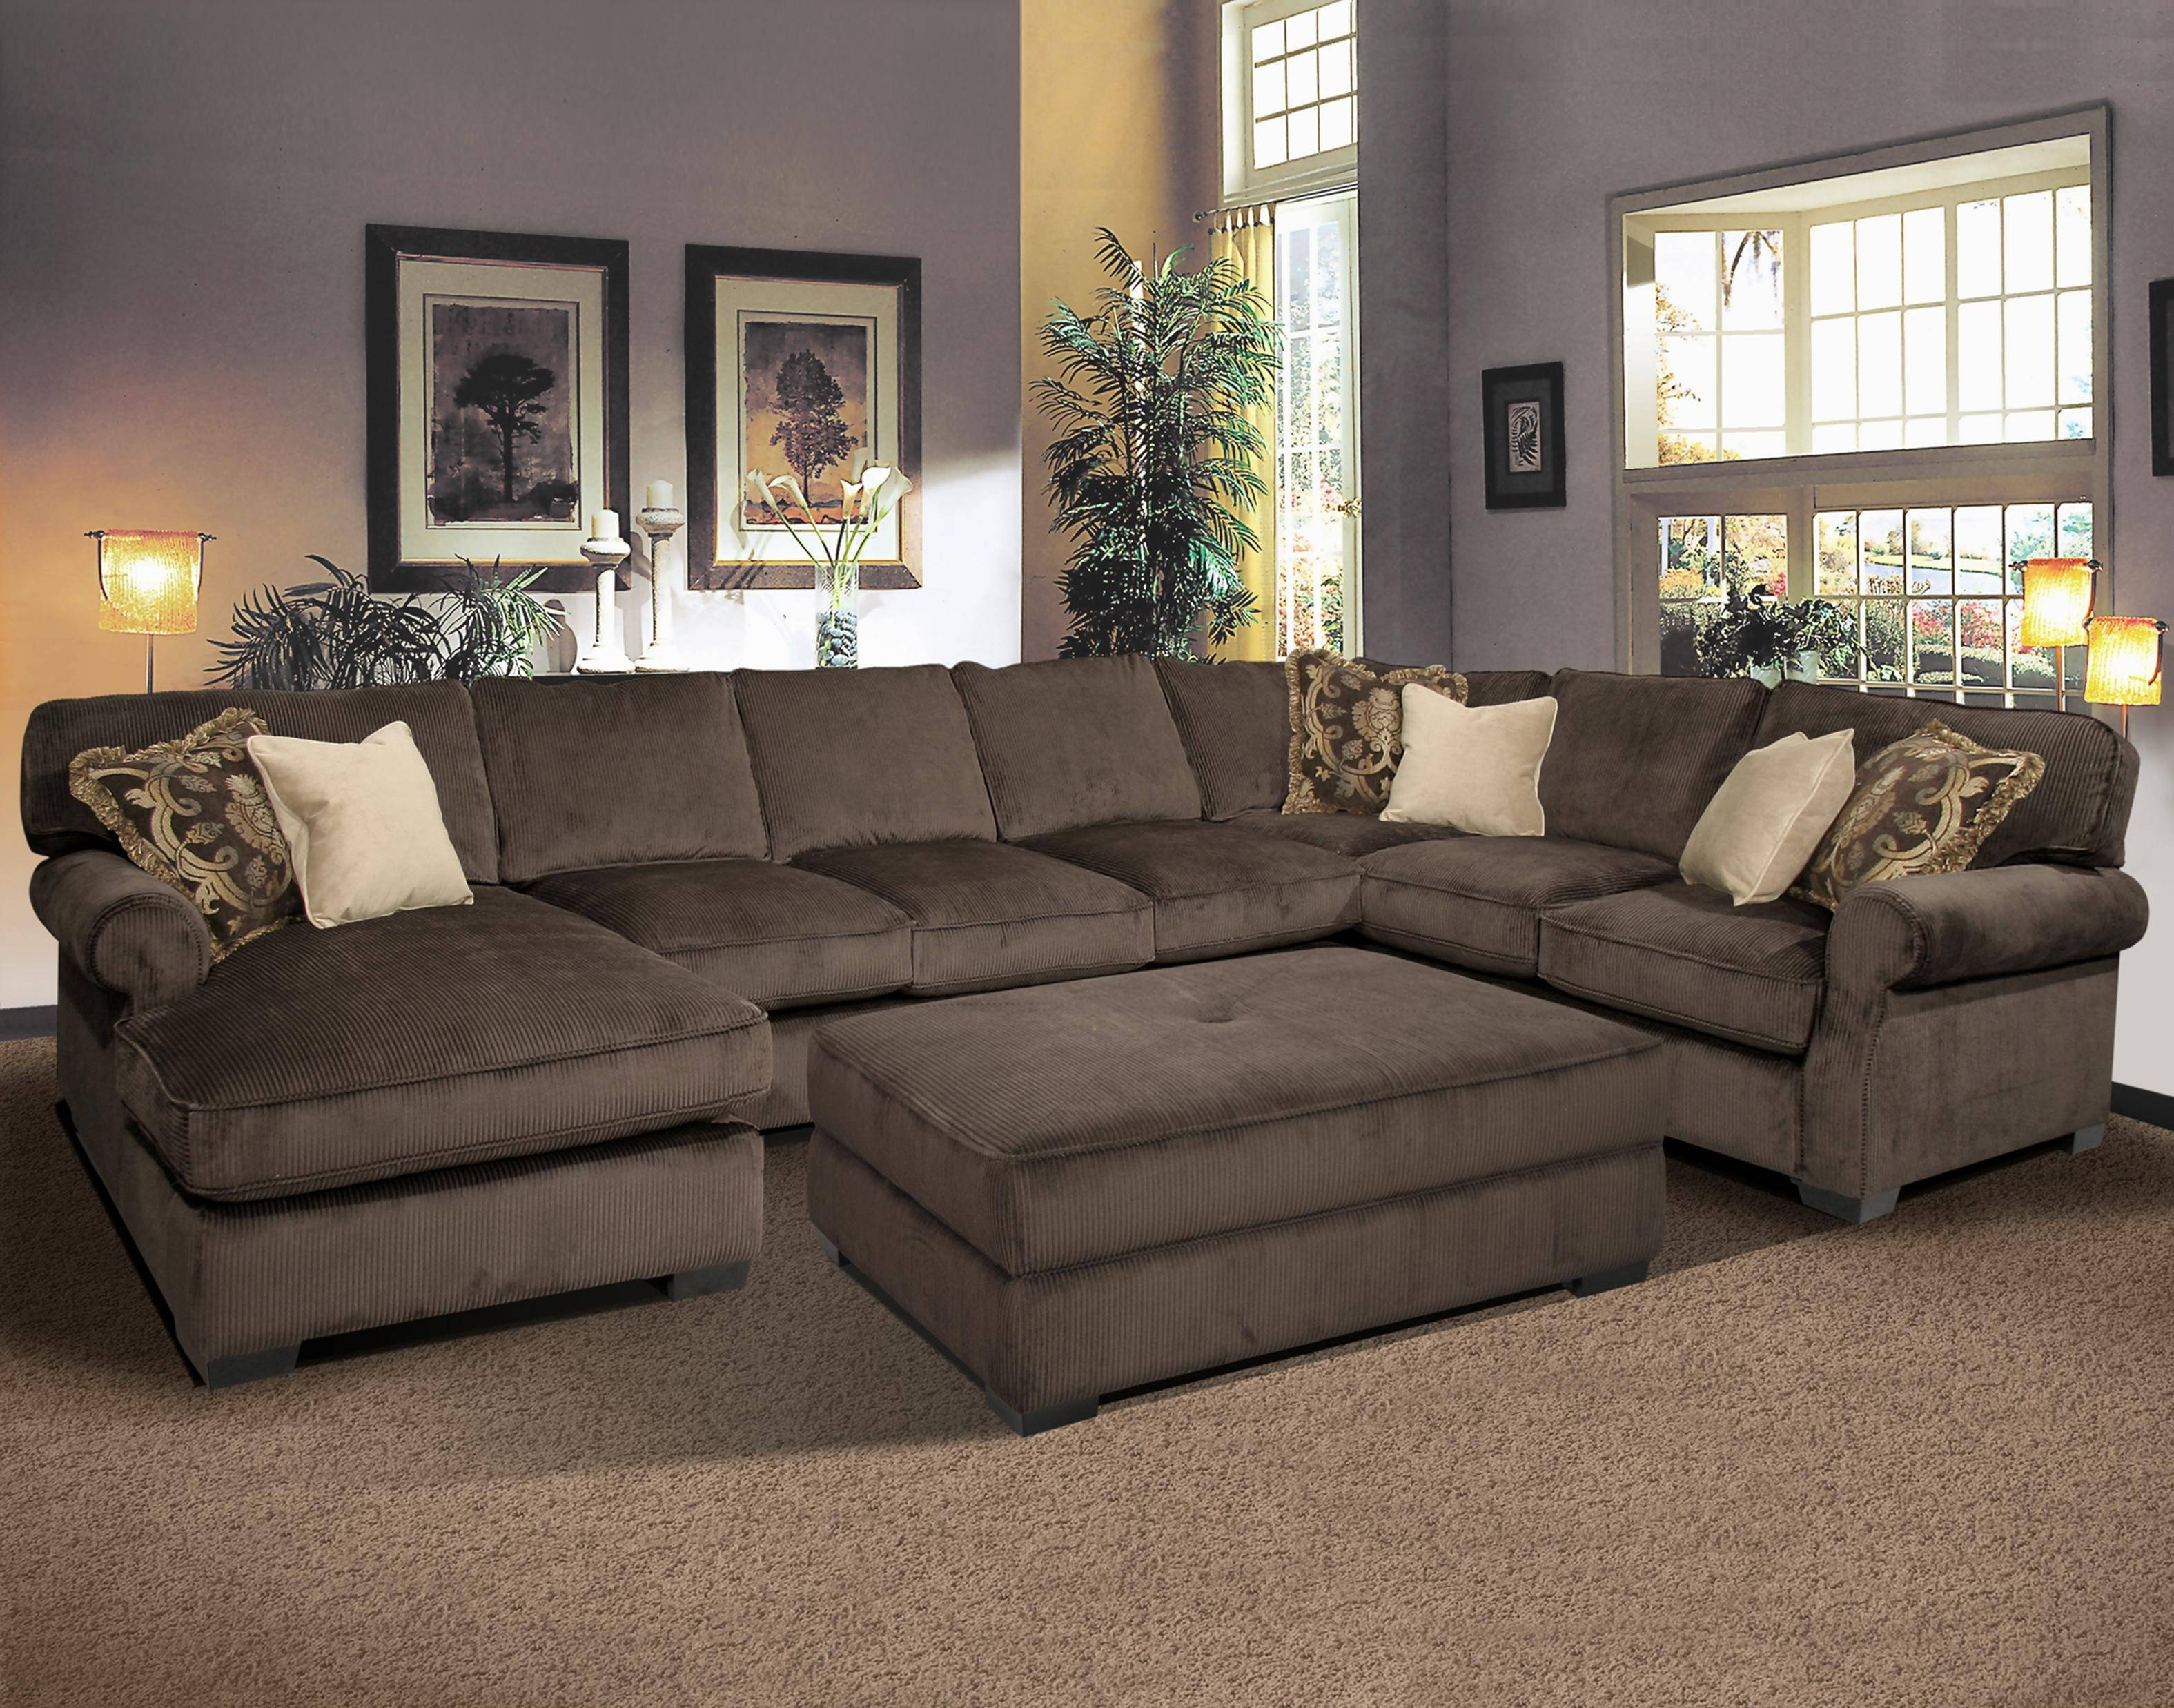 Sofas Center : Cozy Sectional Sofa With Chaise And Ottoman About throughout Down Filled Sofa Sectional (Image 18 of 25)